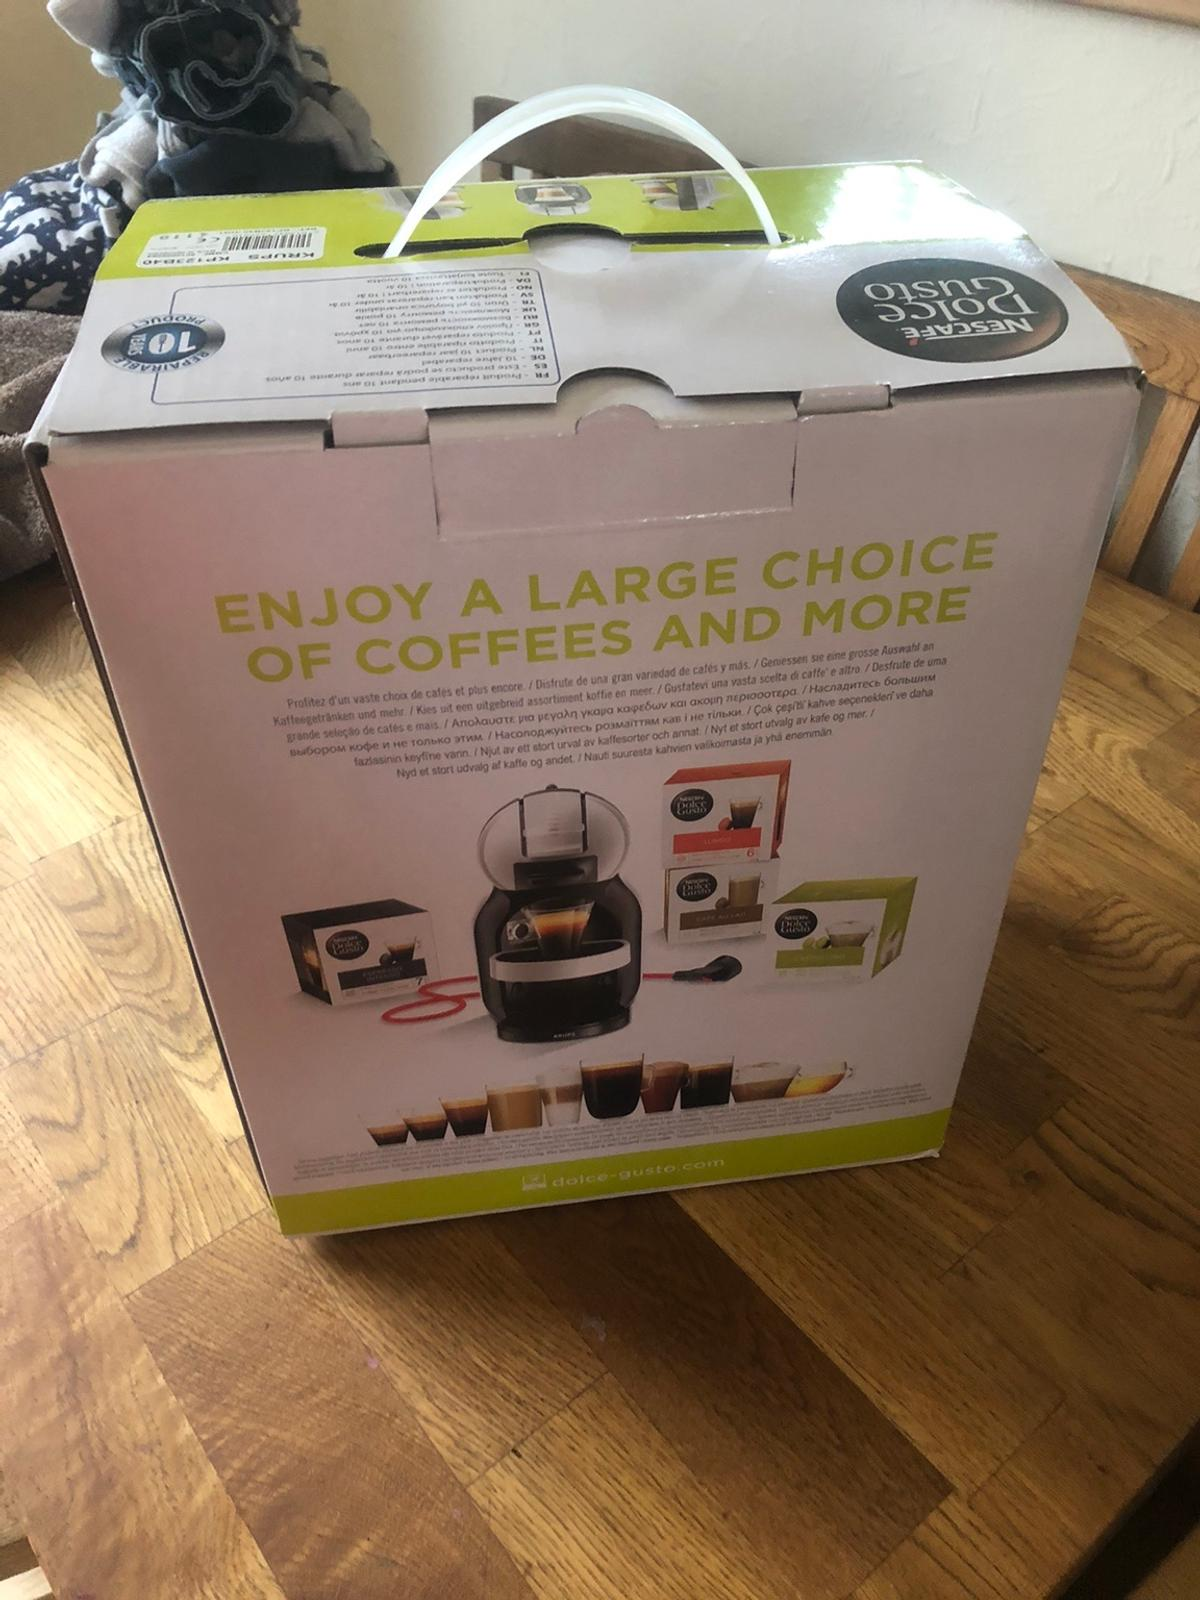 Brand new dolce gusto coffee machine, was bought as a gift from family for Christmas but we already have one. They bought it months ago so can't return! Never even been opened!Grab a bargain